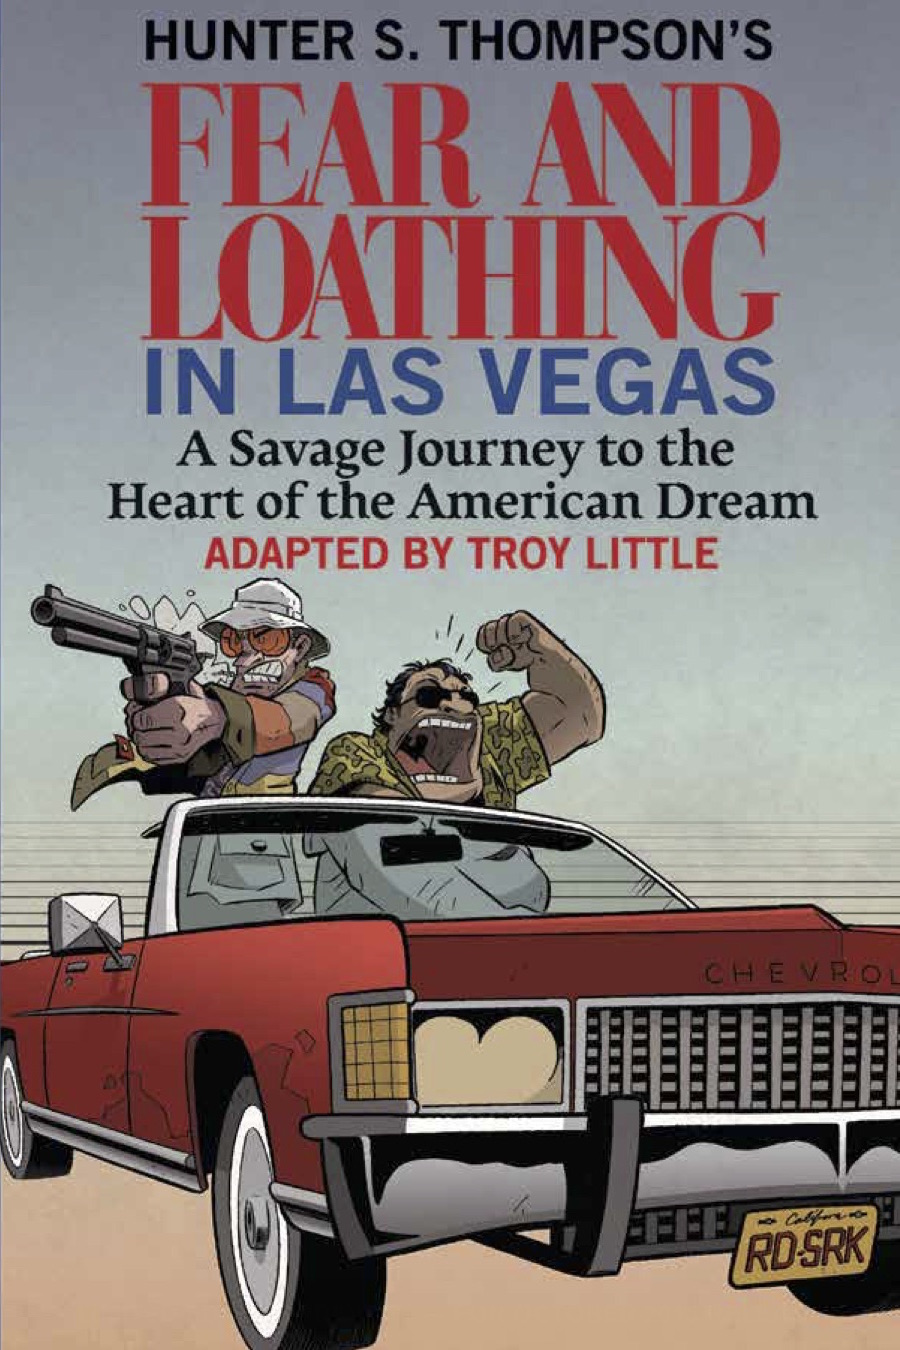 an analysis of the mythic journey in the fear and loathing in las vegas a novel by hunter s thompson Fear and loathing in las vegas: a savage journey into the heart of the american dream is hunter s thompson's notoriously unconventional gonzo novel, which blurs the narrative line between fiction and non-fiction.